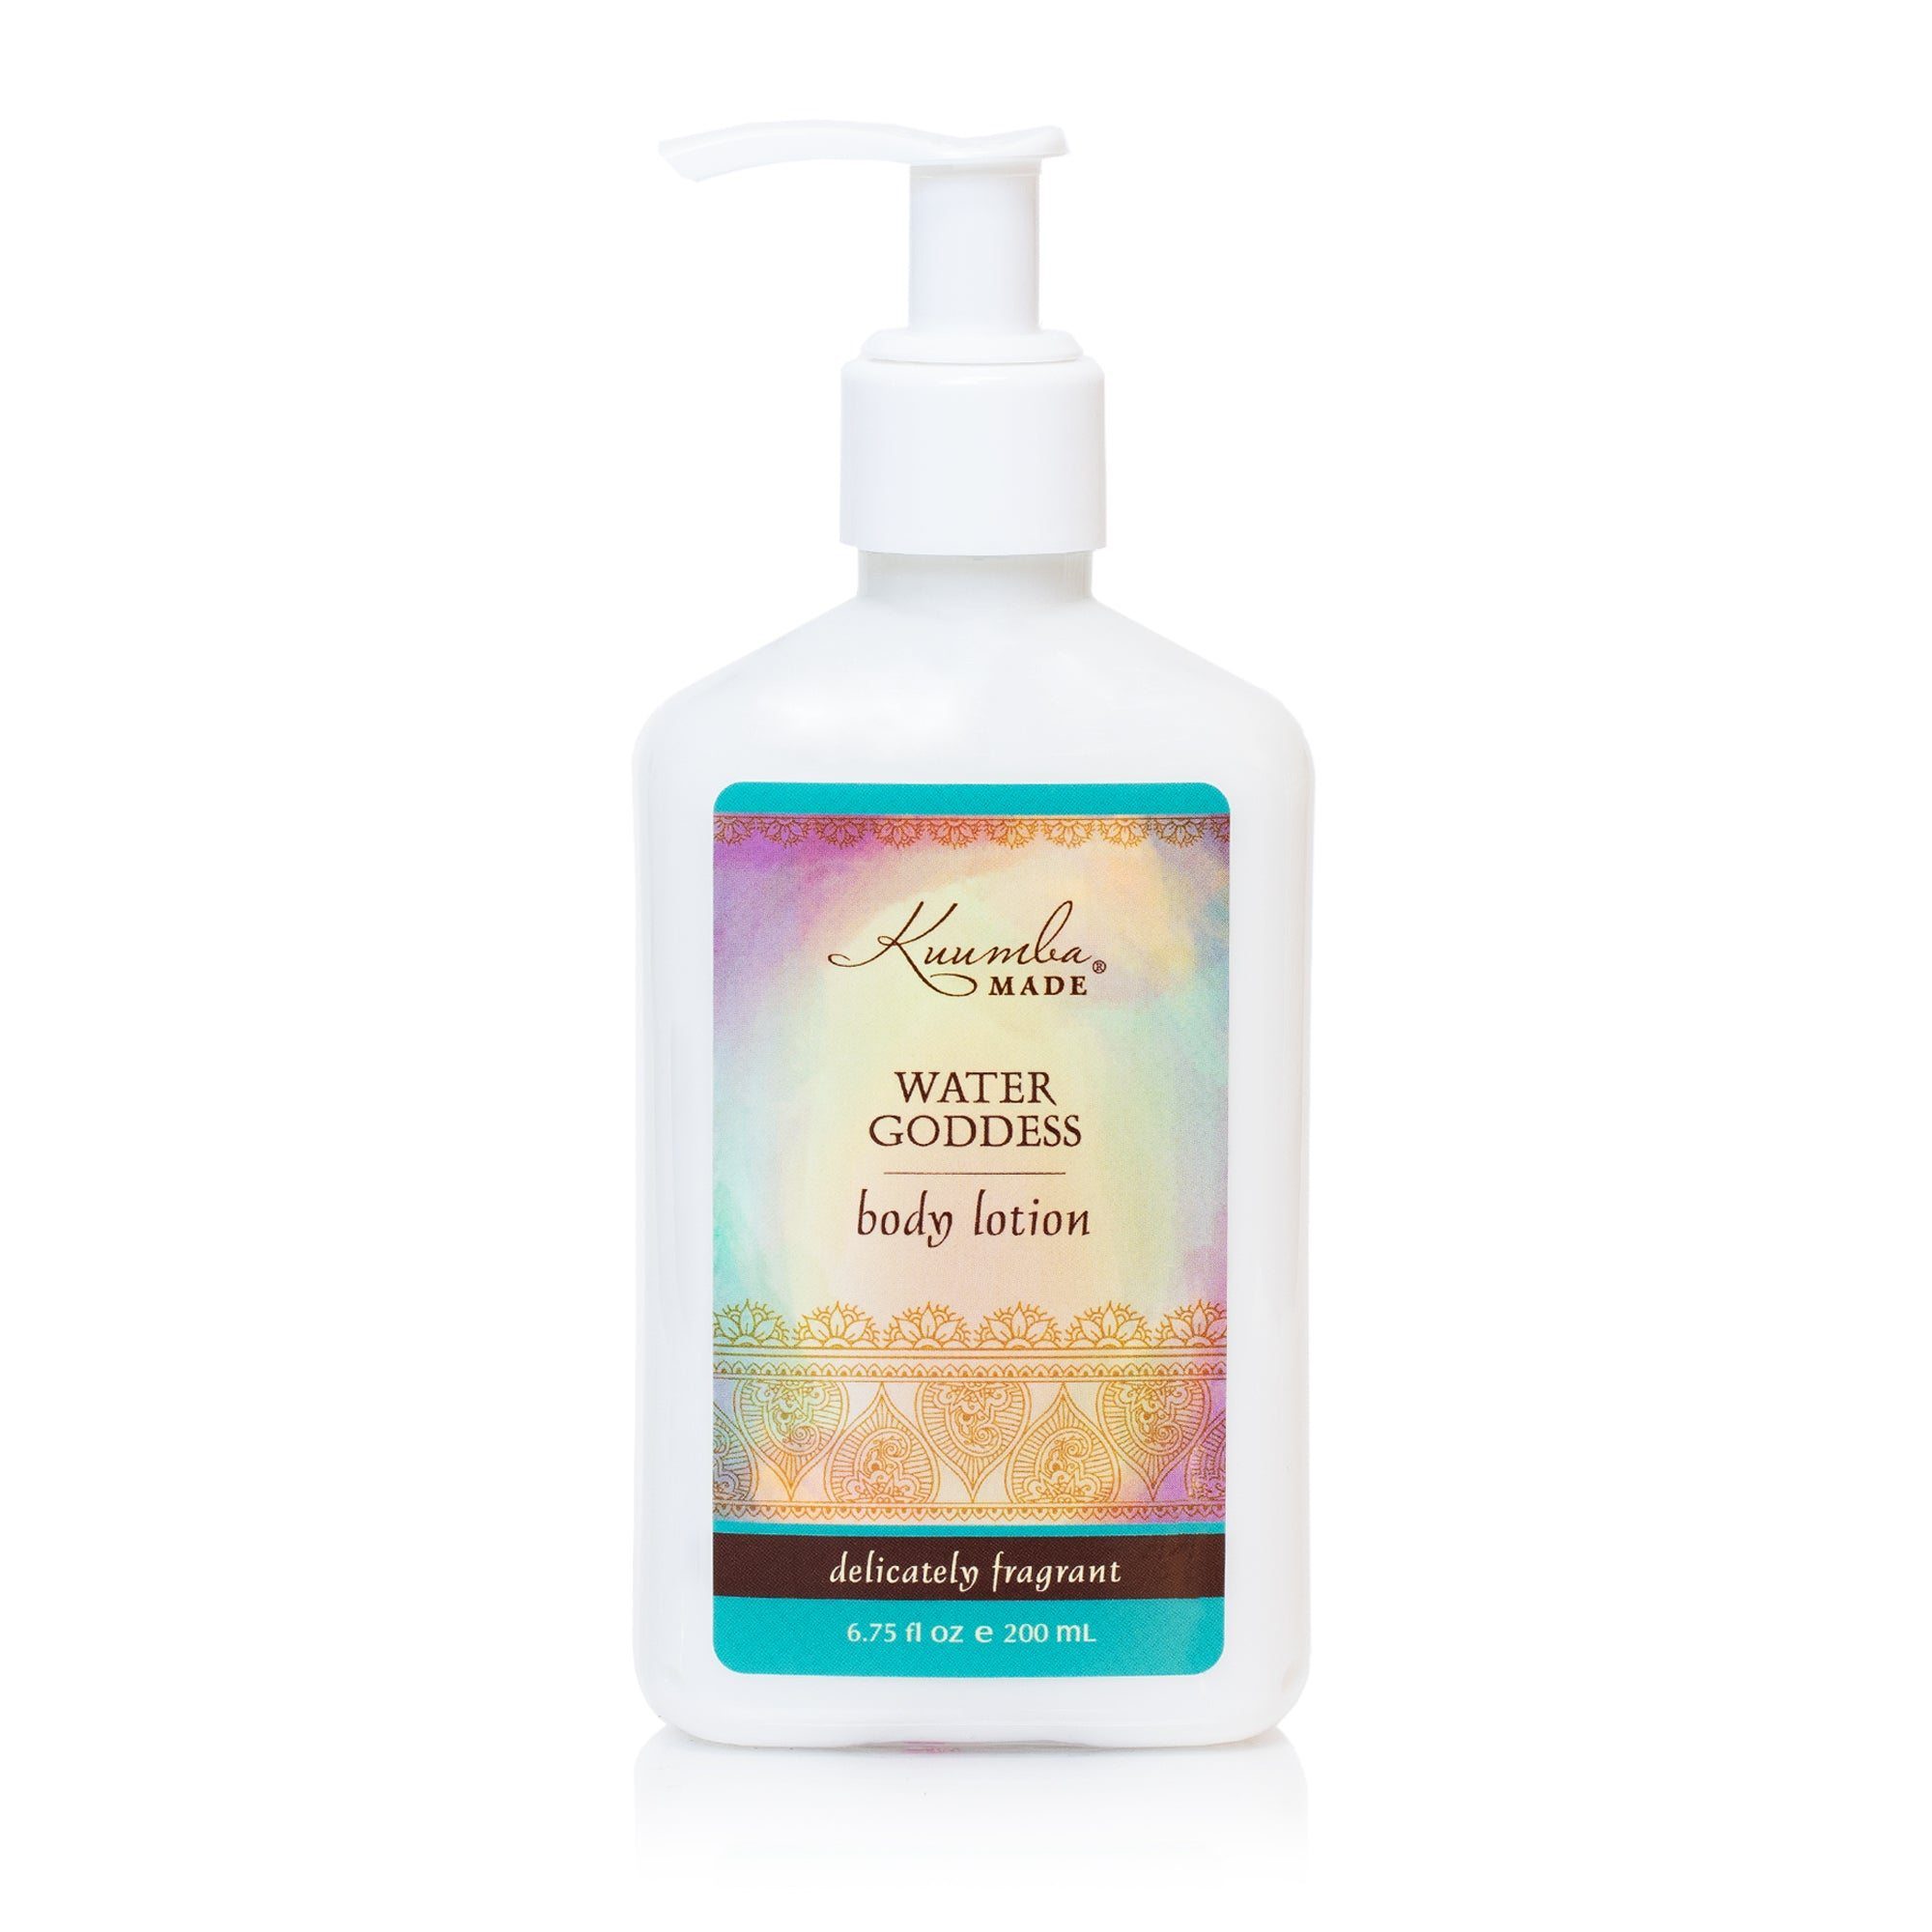 Water Goddess Body Lotion